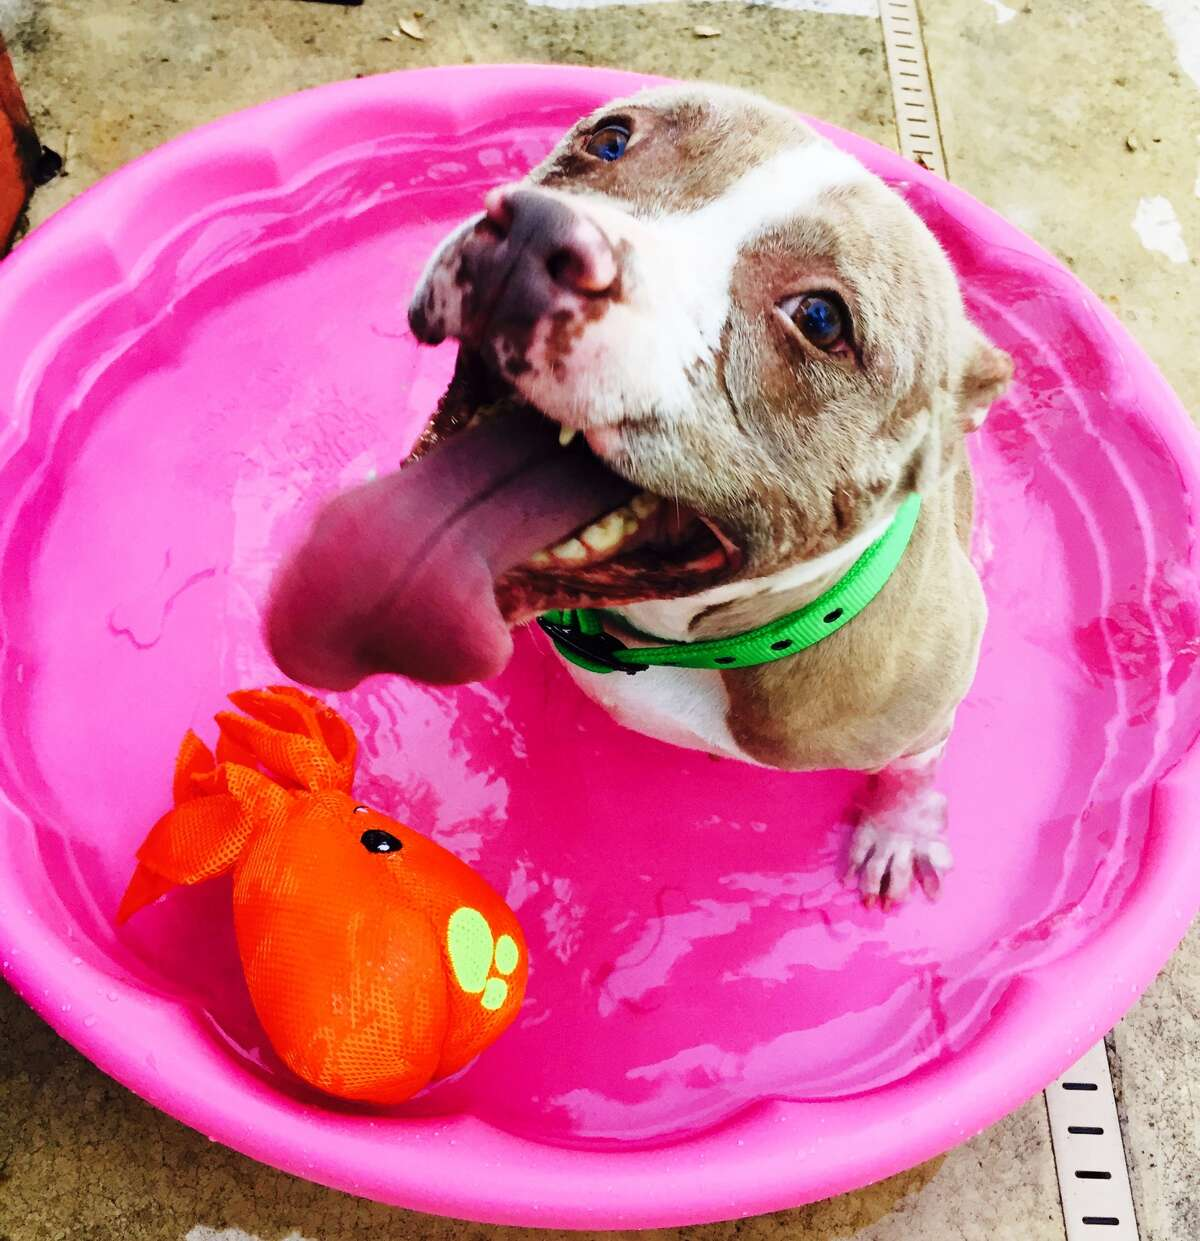 Rosie the pit bull, who suffered deep chemical burns from a previous owner, is in a loving happy home here in San Antonio.